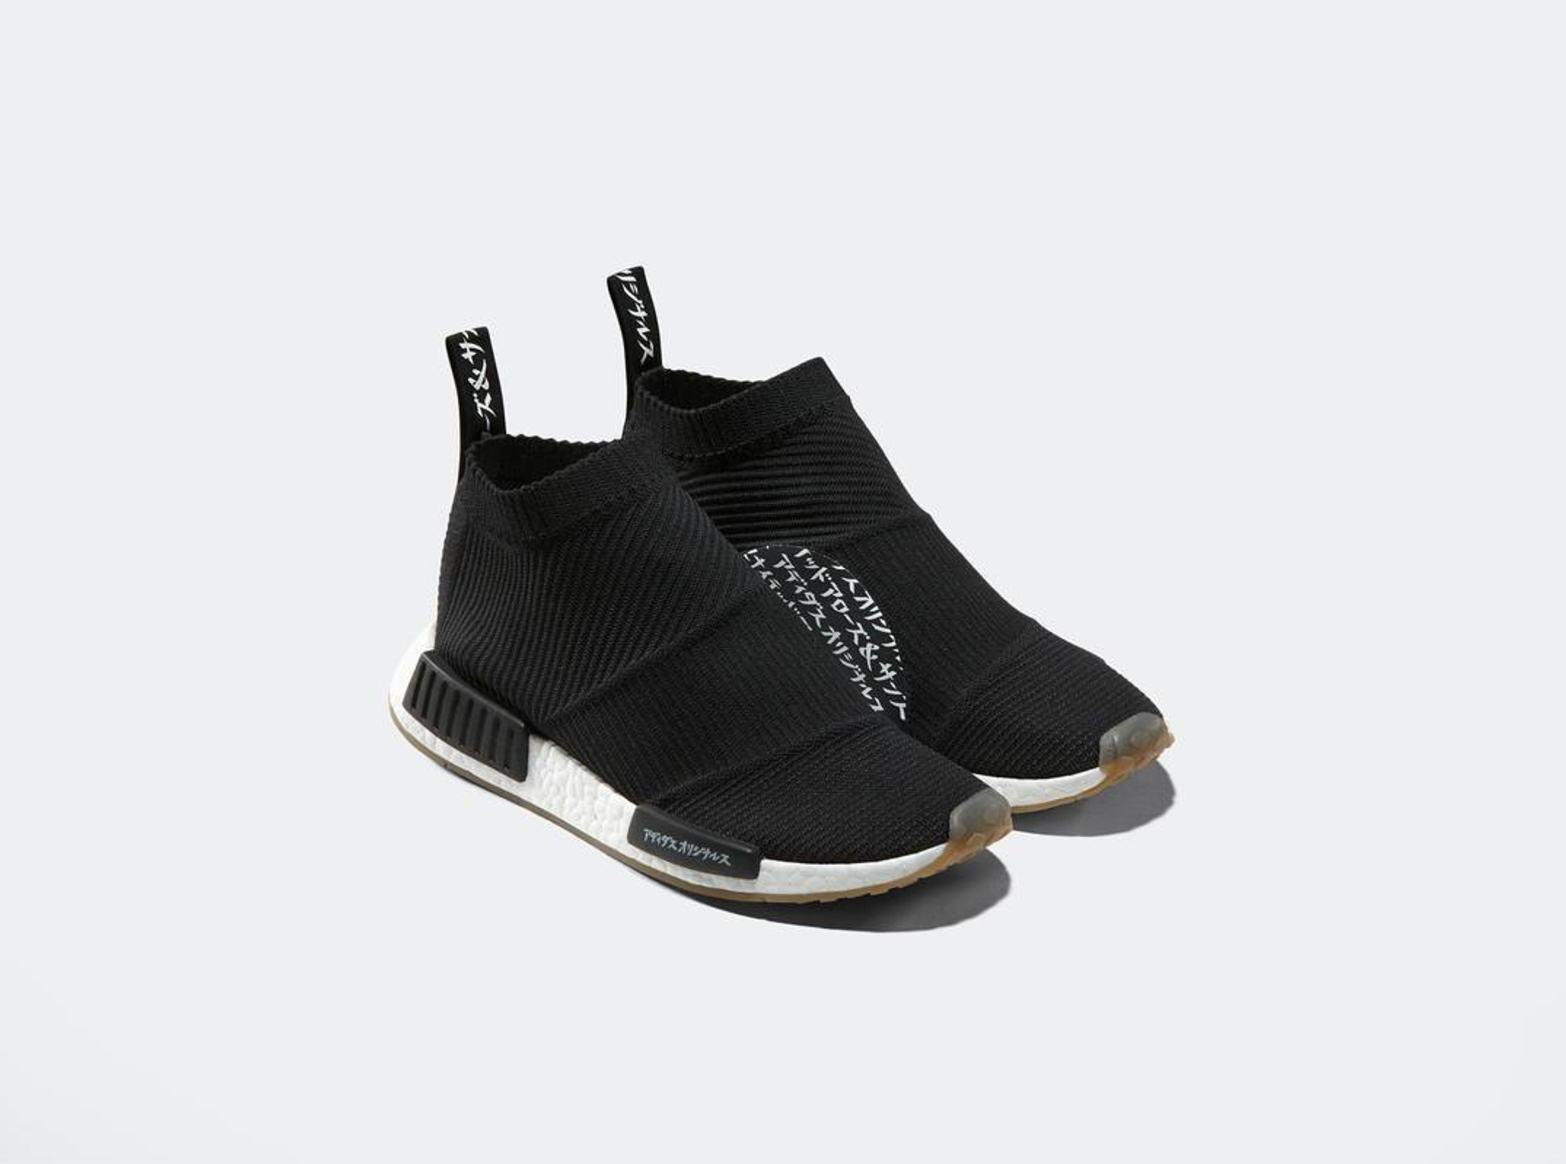 low priced 9f86b 3a14b New NMD CS1 PK and Capsule from adidas, United Arrows & Sons ...